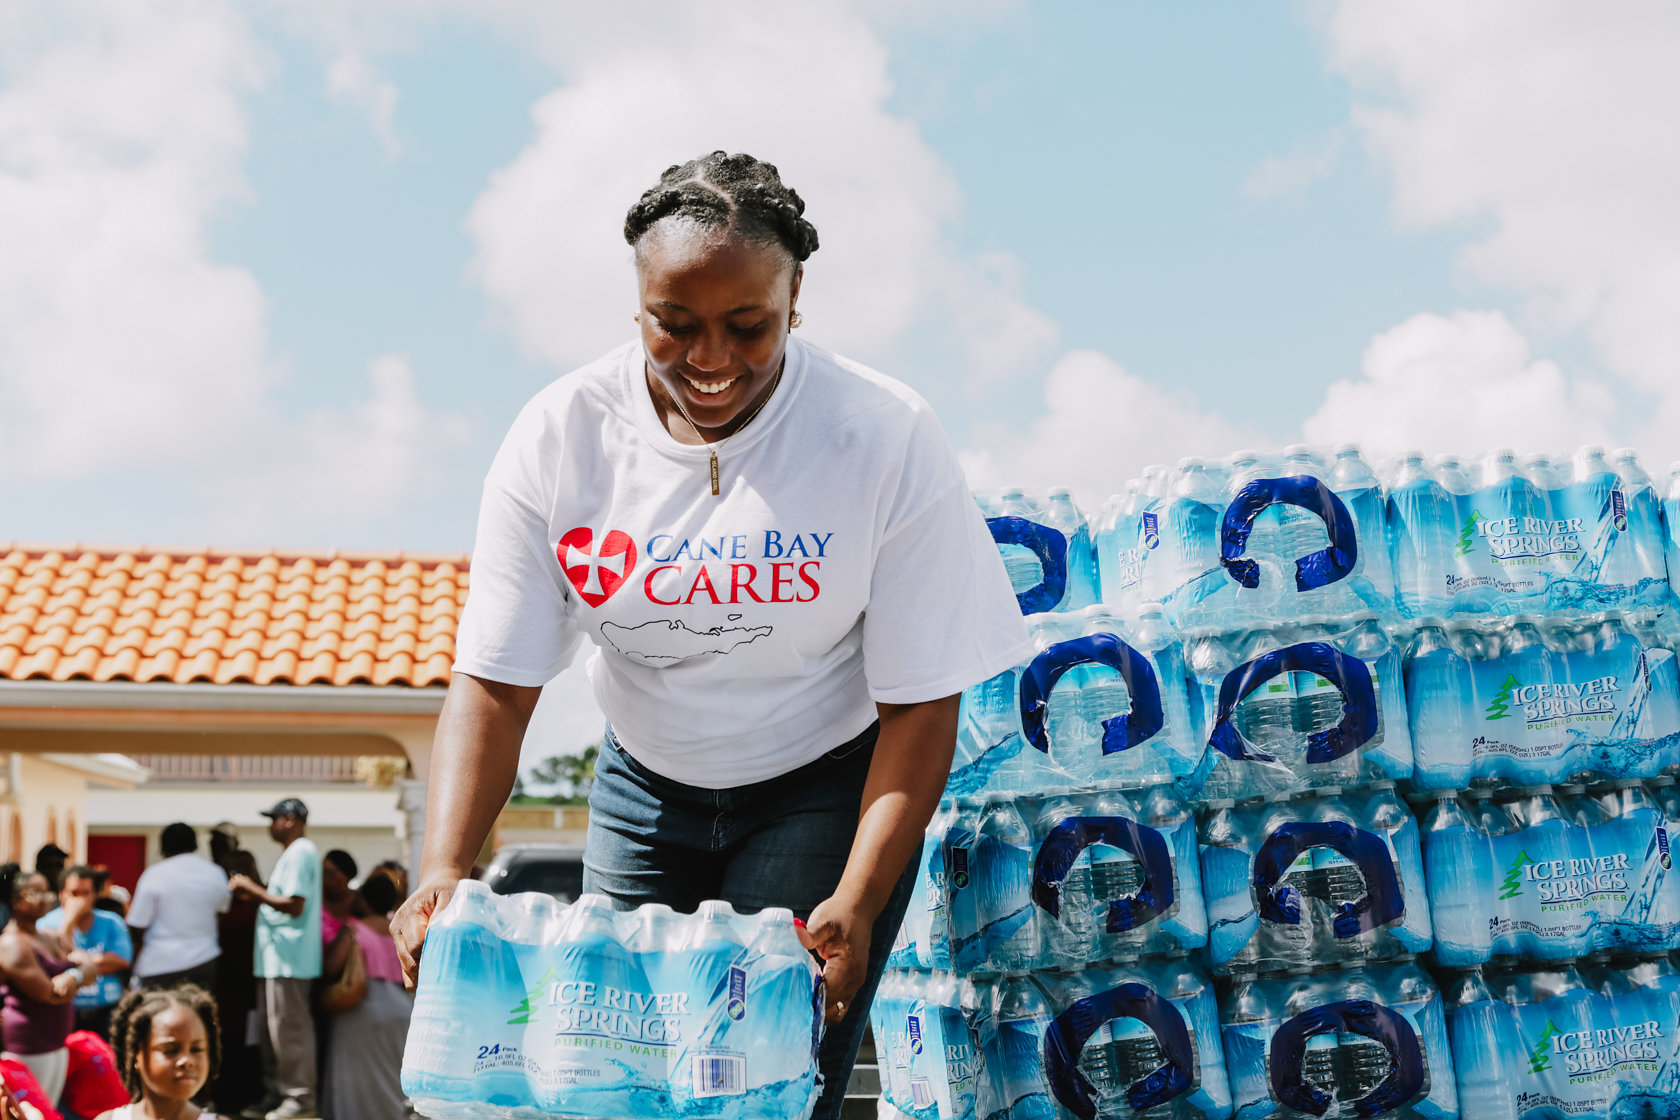 Cane Bay Partners Volunteers Distribute Several Thousand Pounds Of Food, Hundreds Of LUCI Solar Lights And 6 Pallets Of Water Donated By St. Croix Foundation At Zion Christian Academy On Saturday, Nov. 11. Photo Credit: Nicole Canegata Http://nicolecanegata.com/